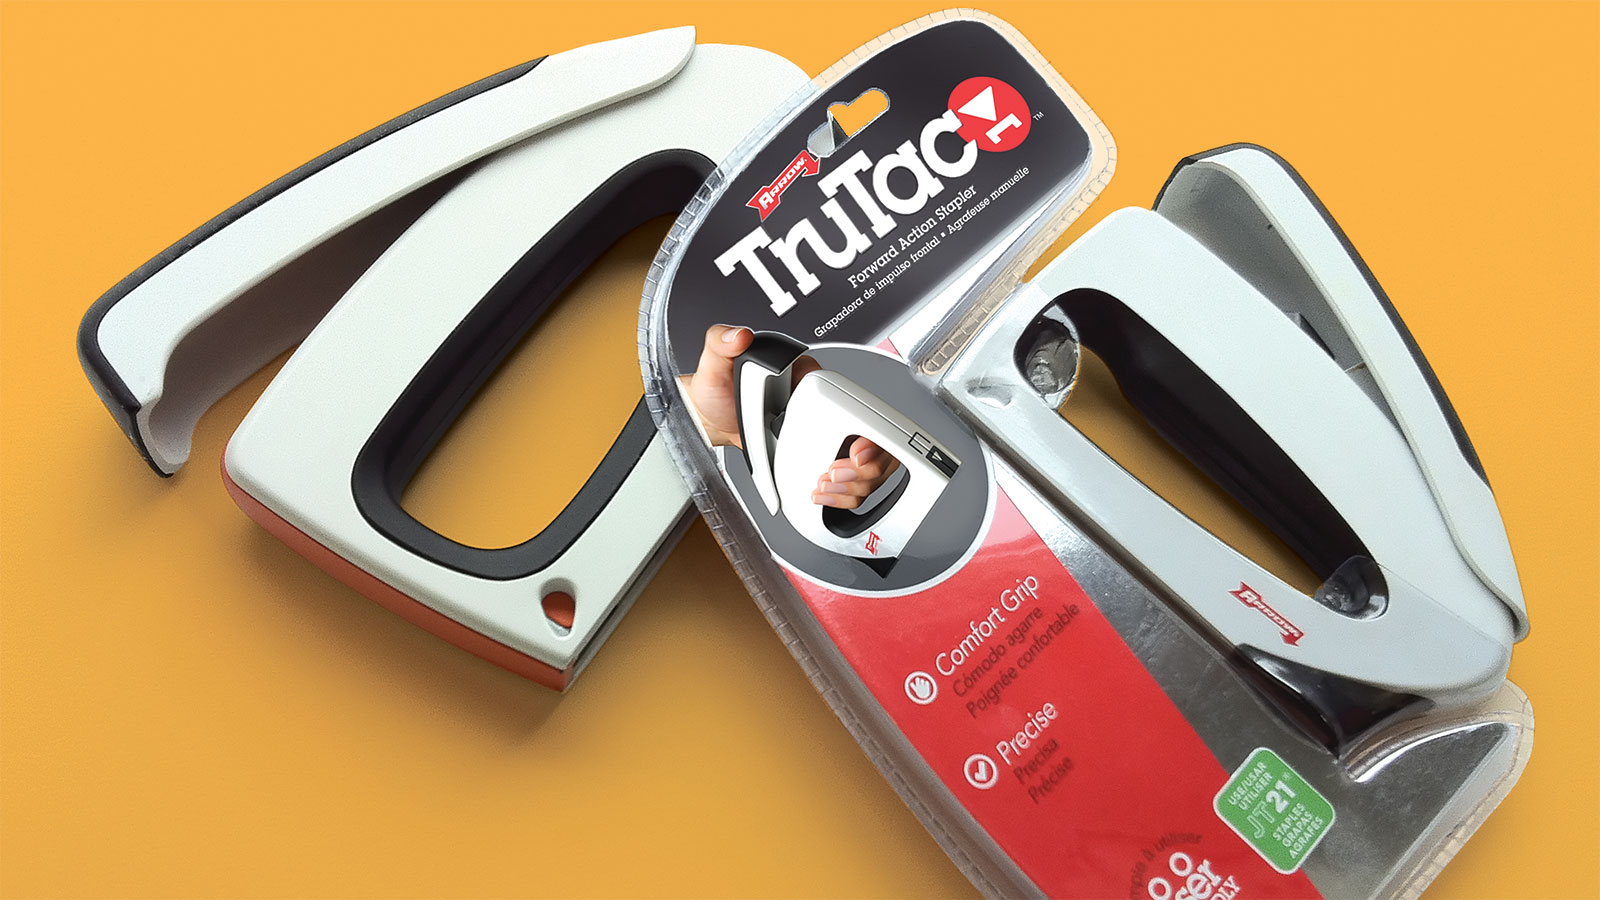 Arrow TruTac stapler packaging design